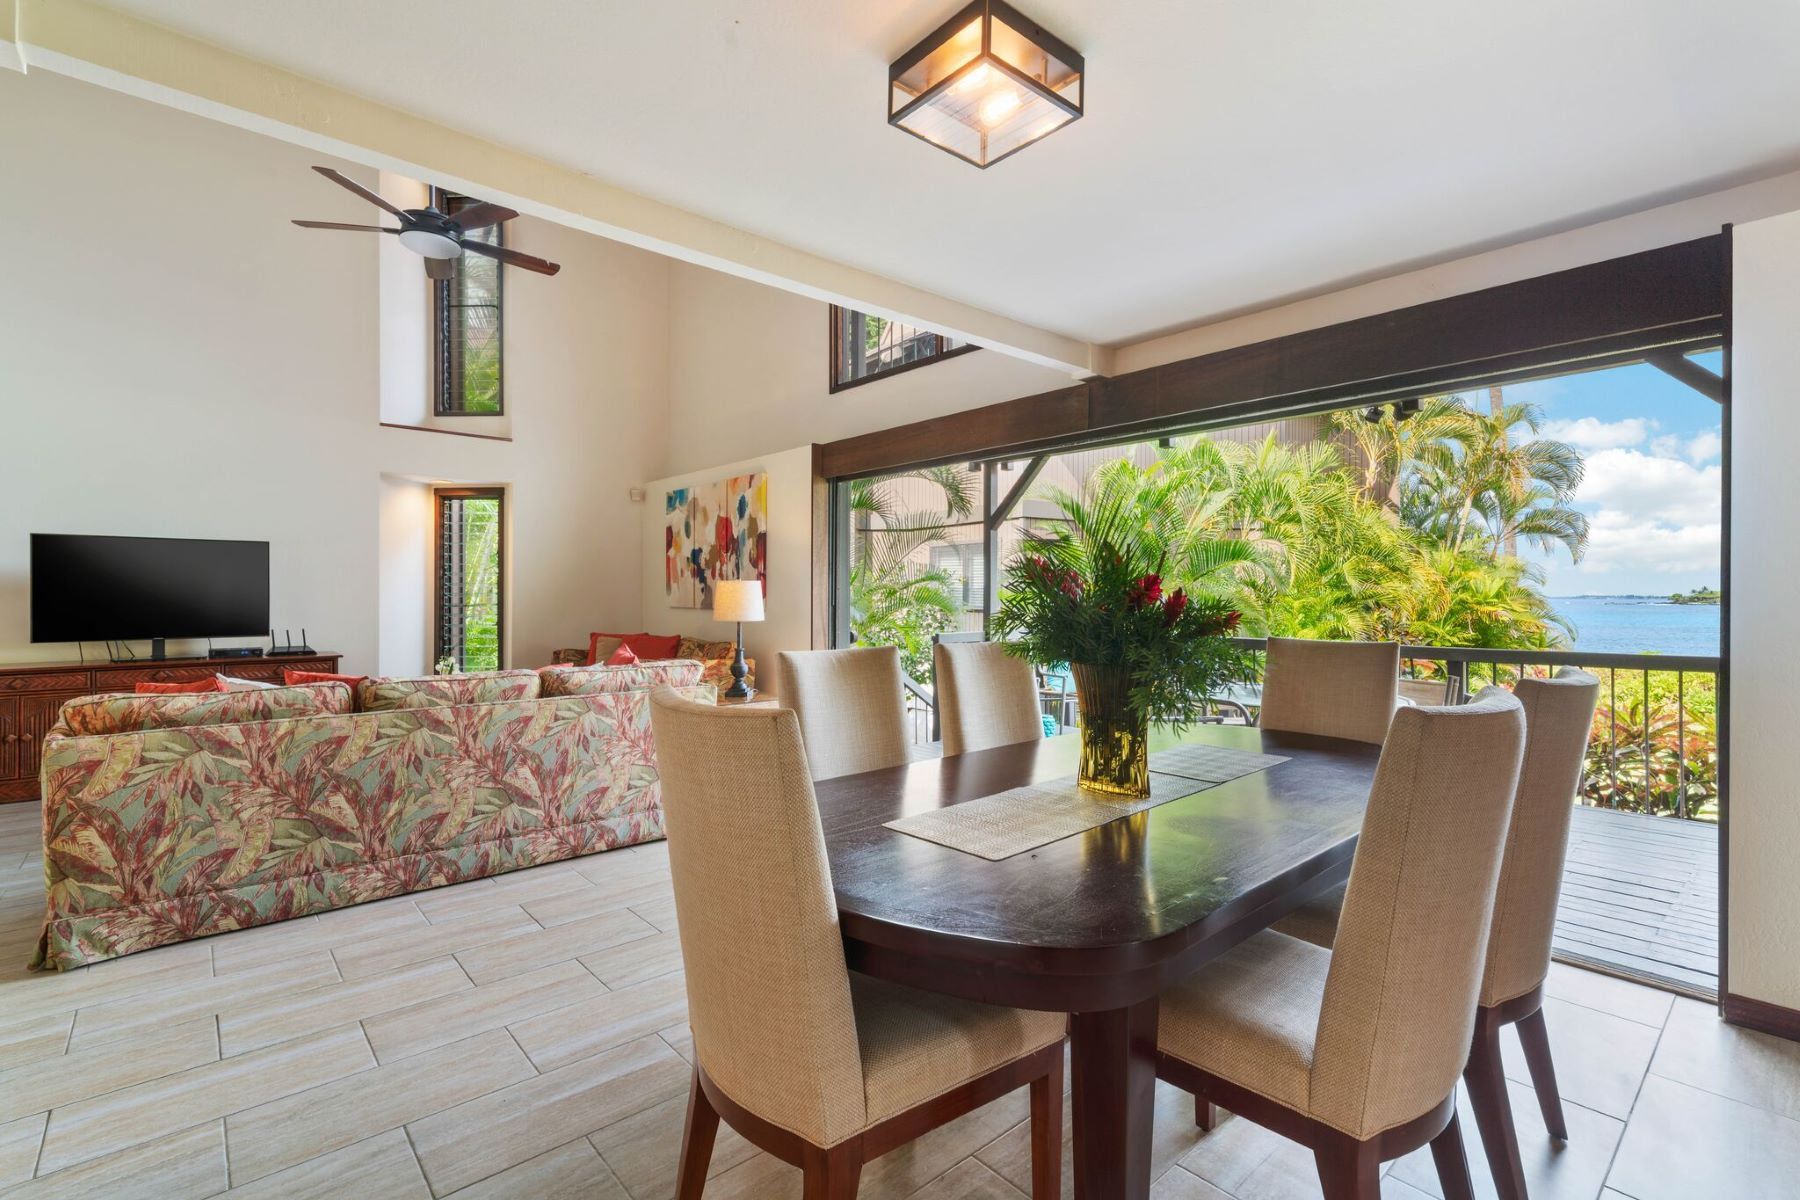 Condominiums for Sale at 77-6516 ALII Drive Apt 12 , Kailua Kona, HI 96740 77-6516 ALII Drive Apt 12 Top of Lihau St. Kailua-Kona, Hawaii 96740 United States